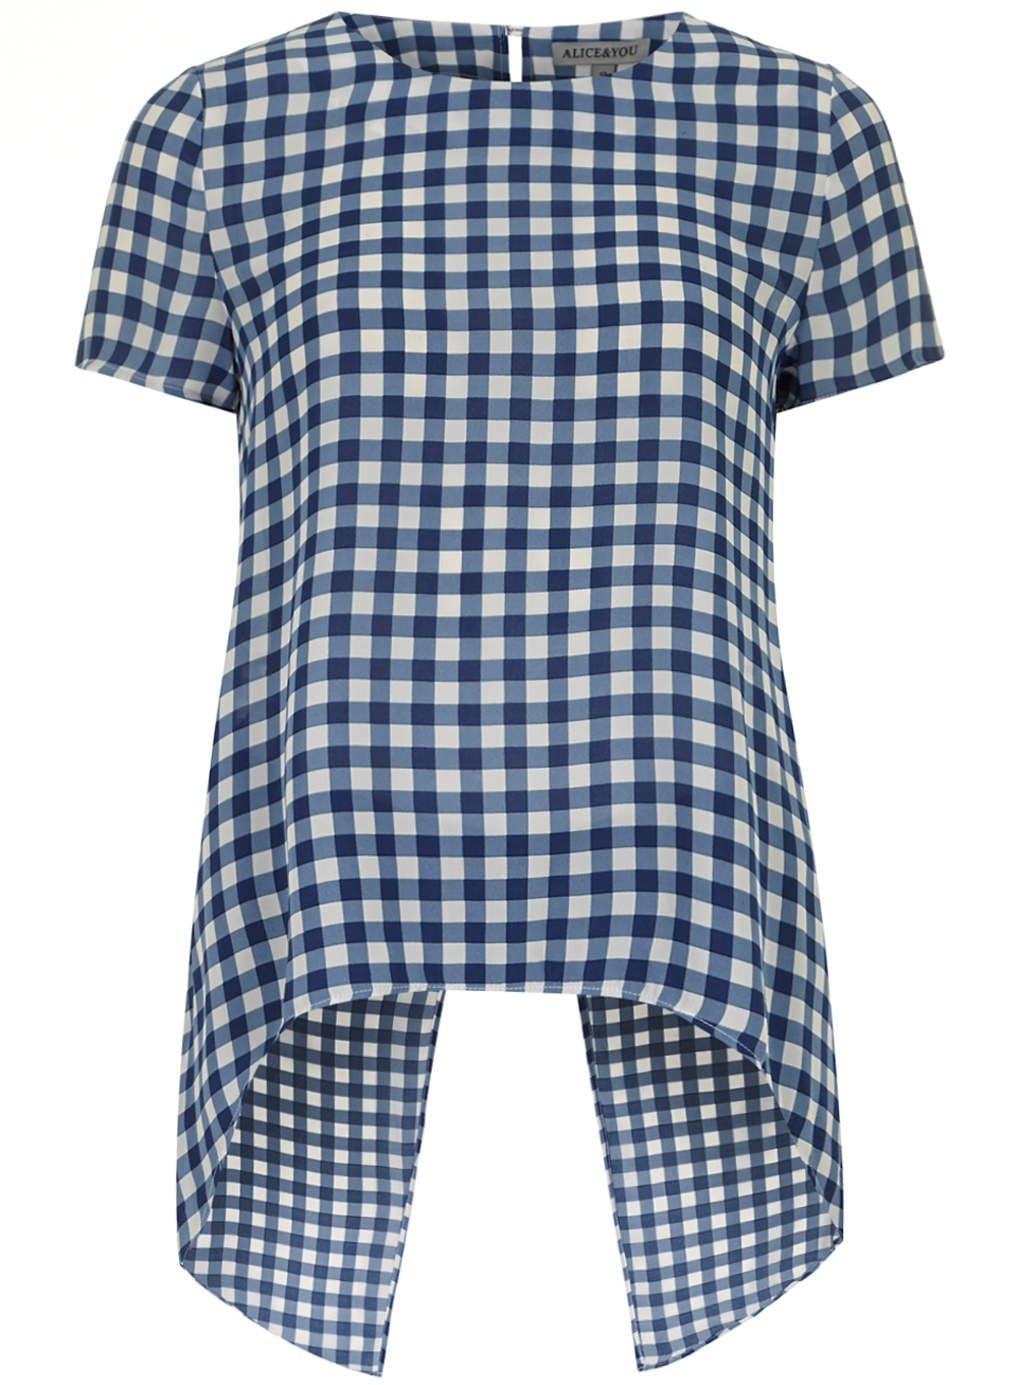 Alice & You Gingham Blouse